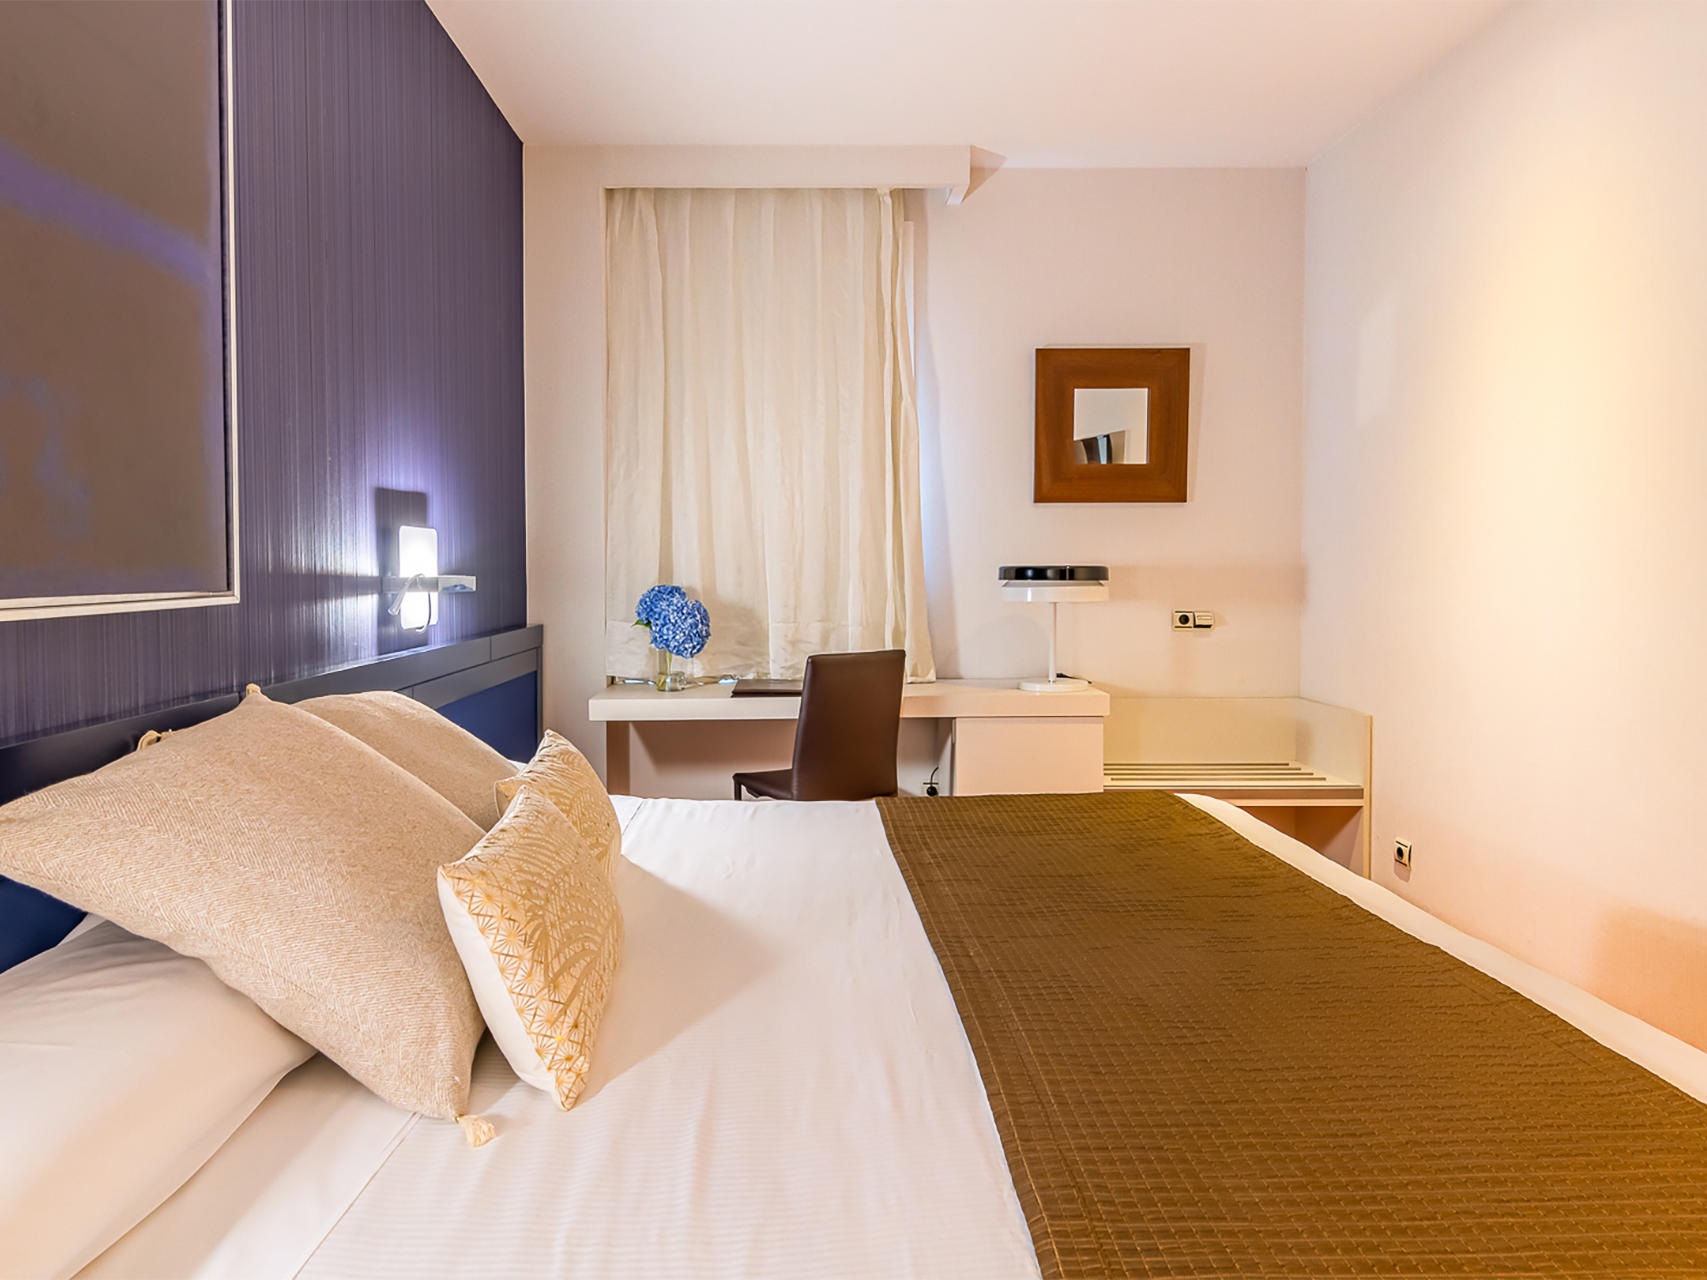 Double Standard Room at Hotel Amura Alcobendas near Madrid Airport